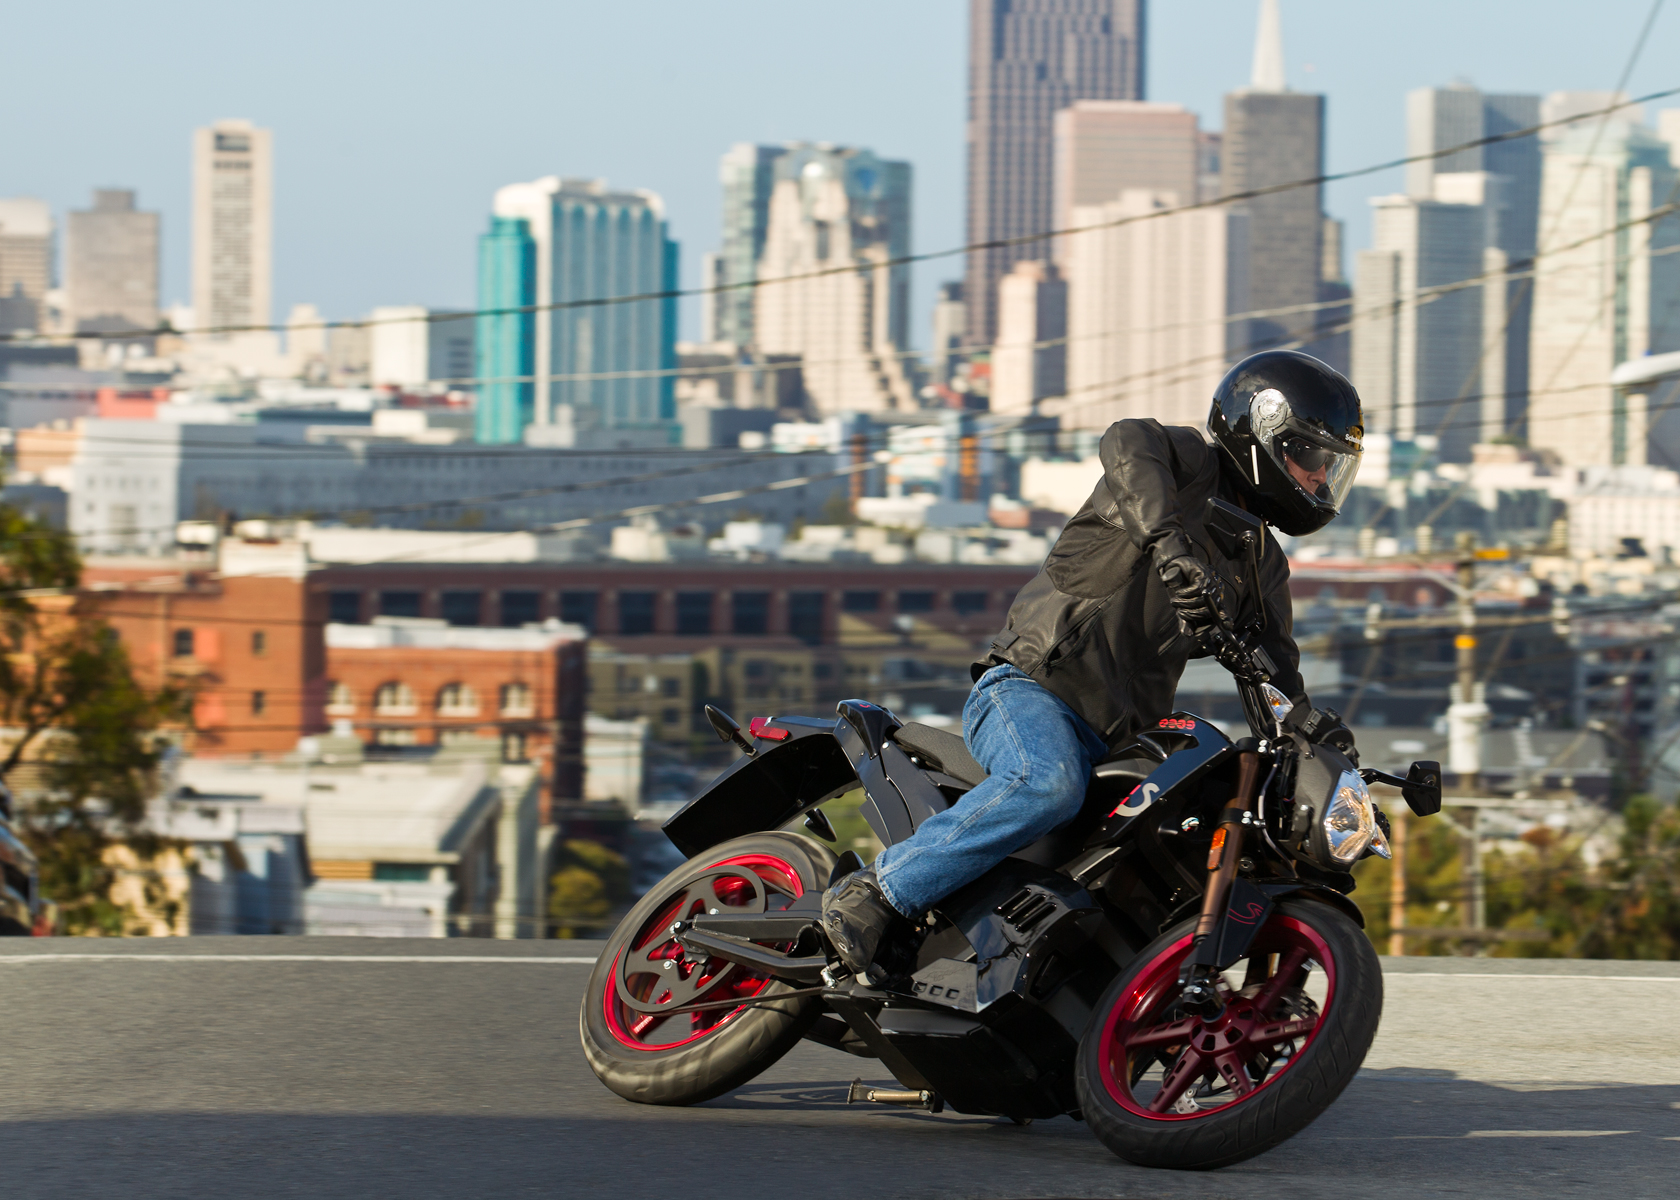 2012 Zero S Electric Motorcycle: Cruising in the City